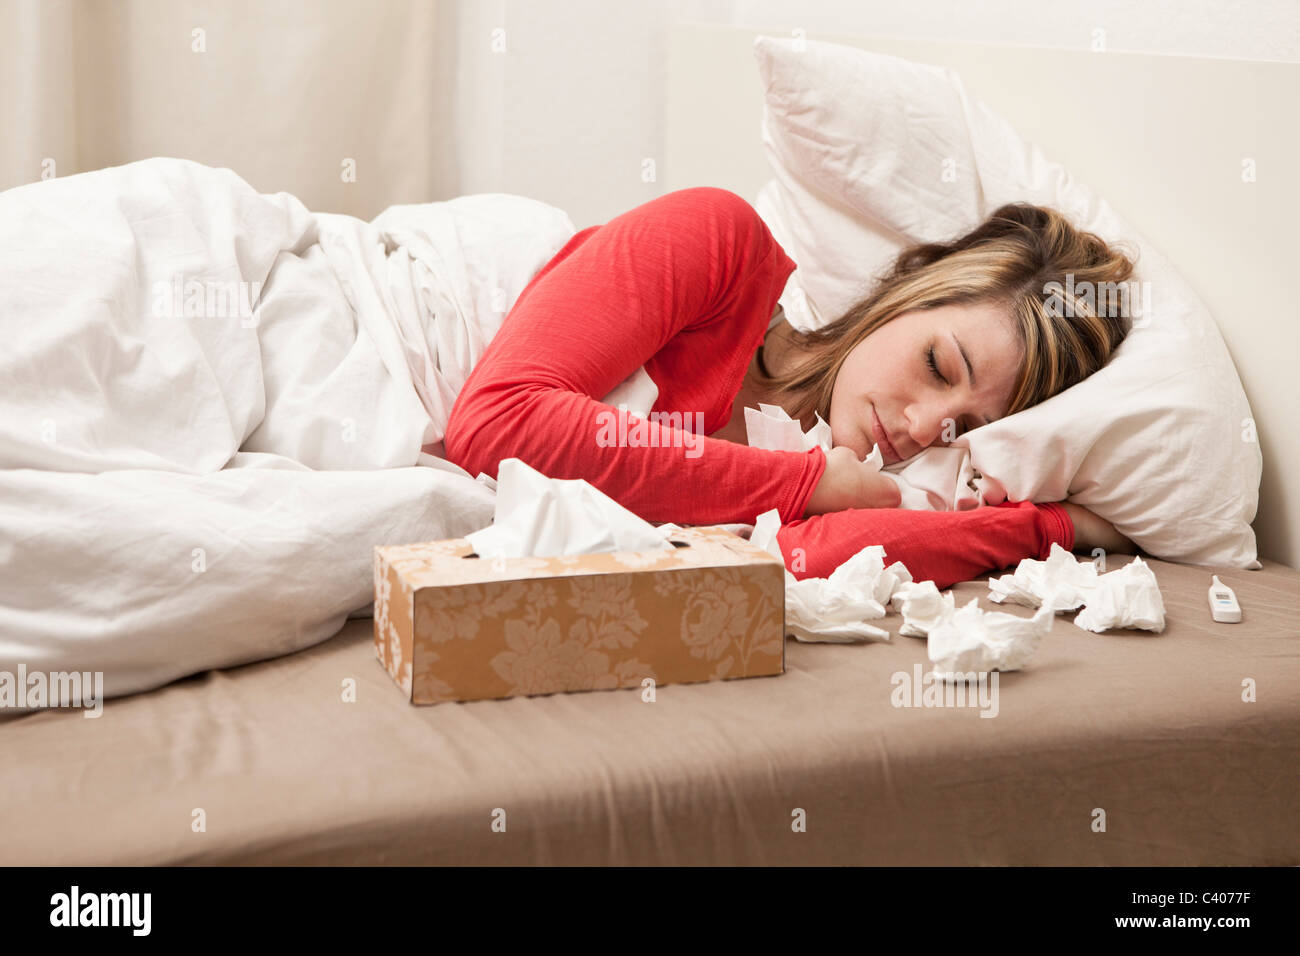 Woman with cold sleeping - Stock Image